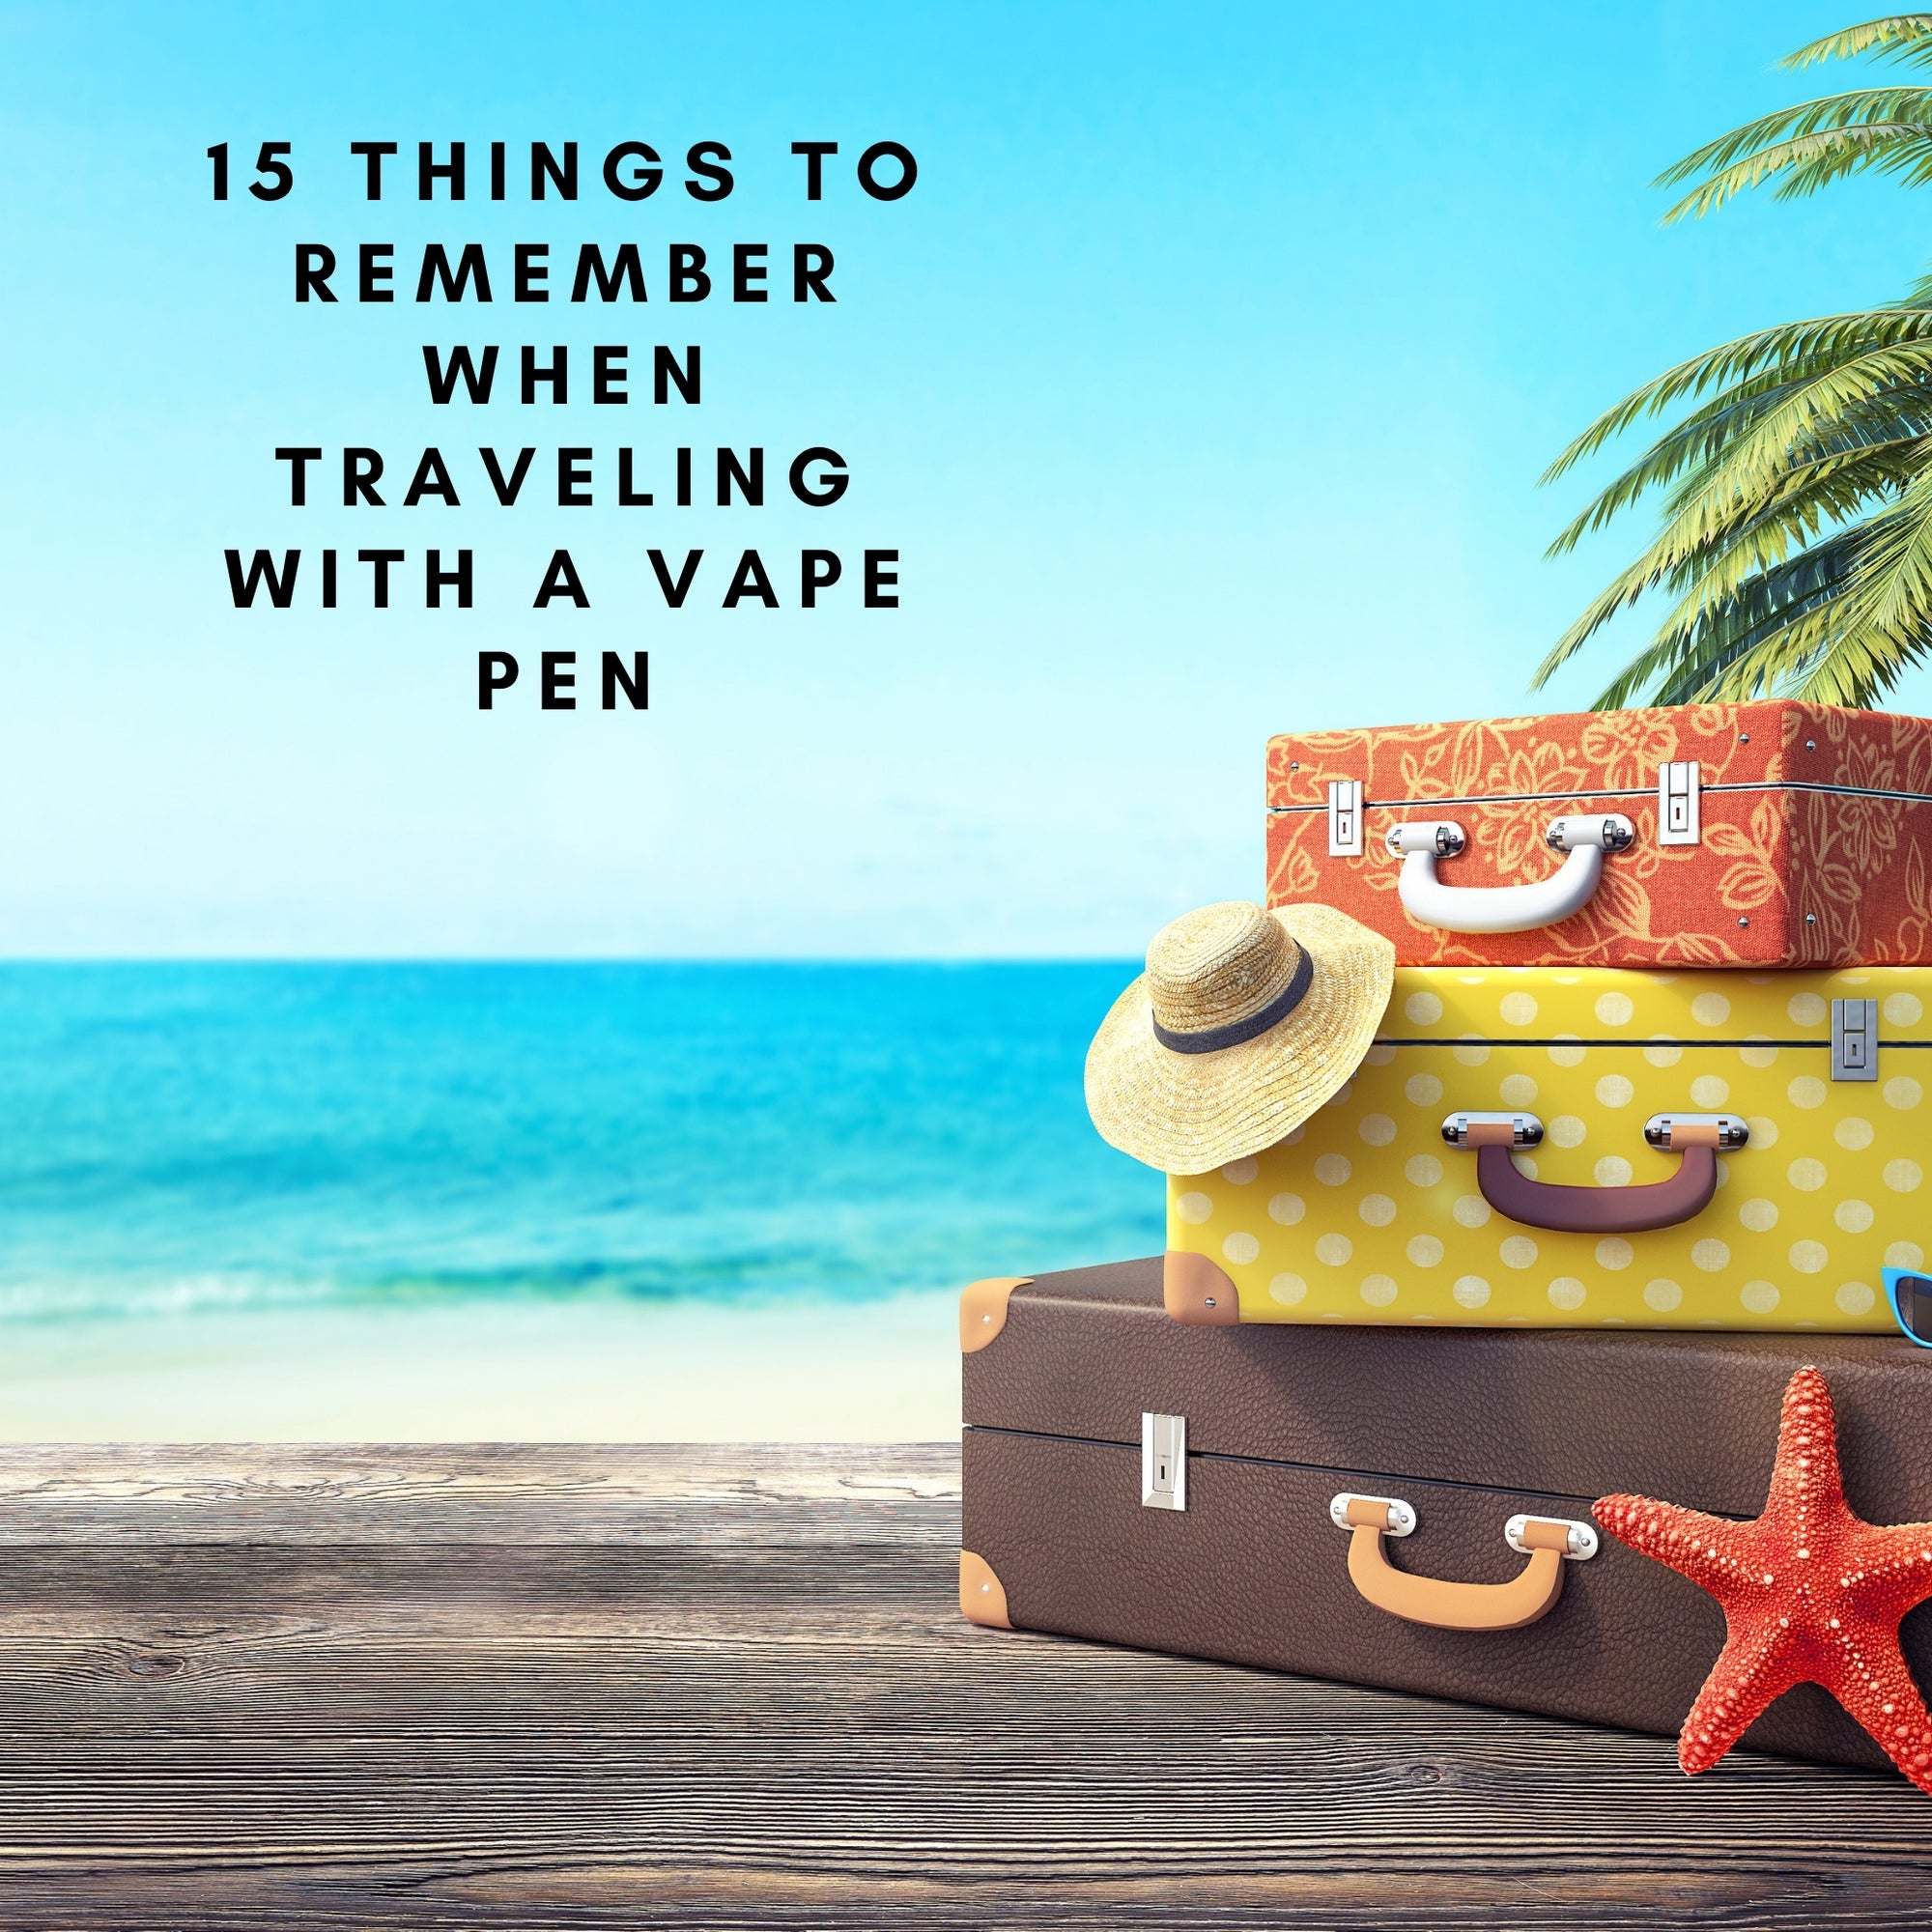 vacation picture with text saying 15 things to remember when traveling with a vape pen